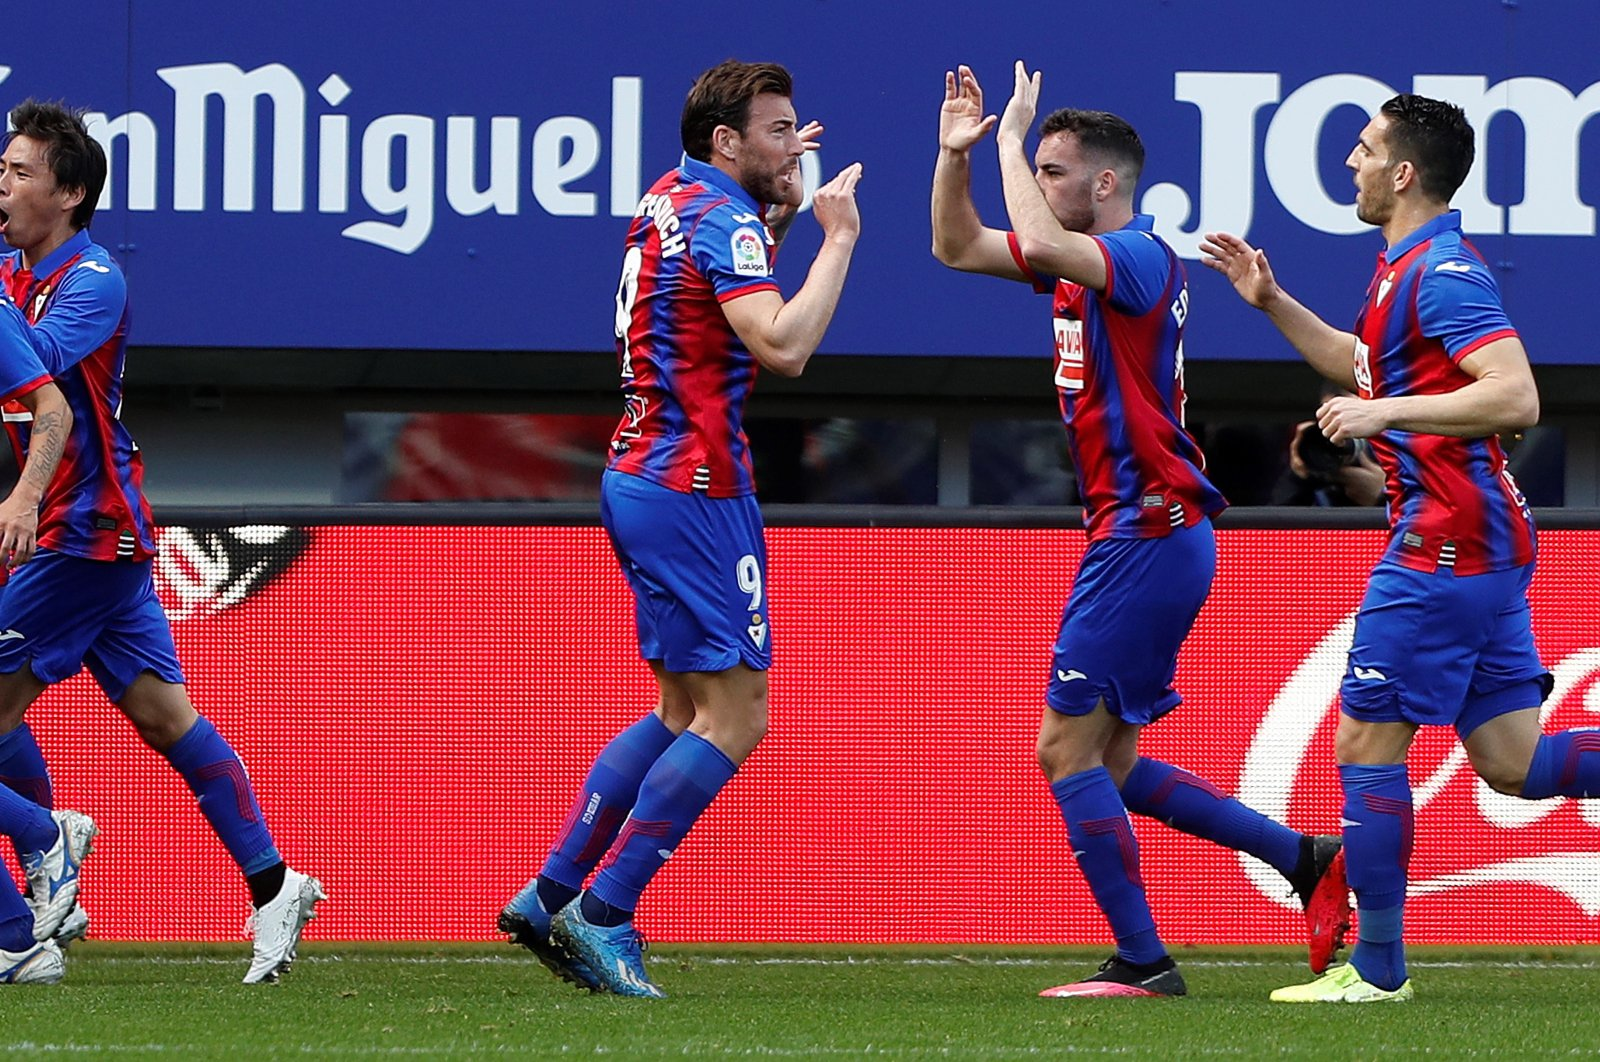 Eibar players celebrate a goal during a La Liga match against Real Betis, in Aibar, Spain, Feb. 2, 2020. Eibar will host Celta Vigo for La Liga's season opener on Saturday. (EPA Photo)